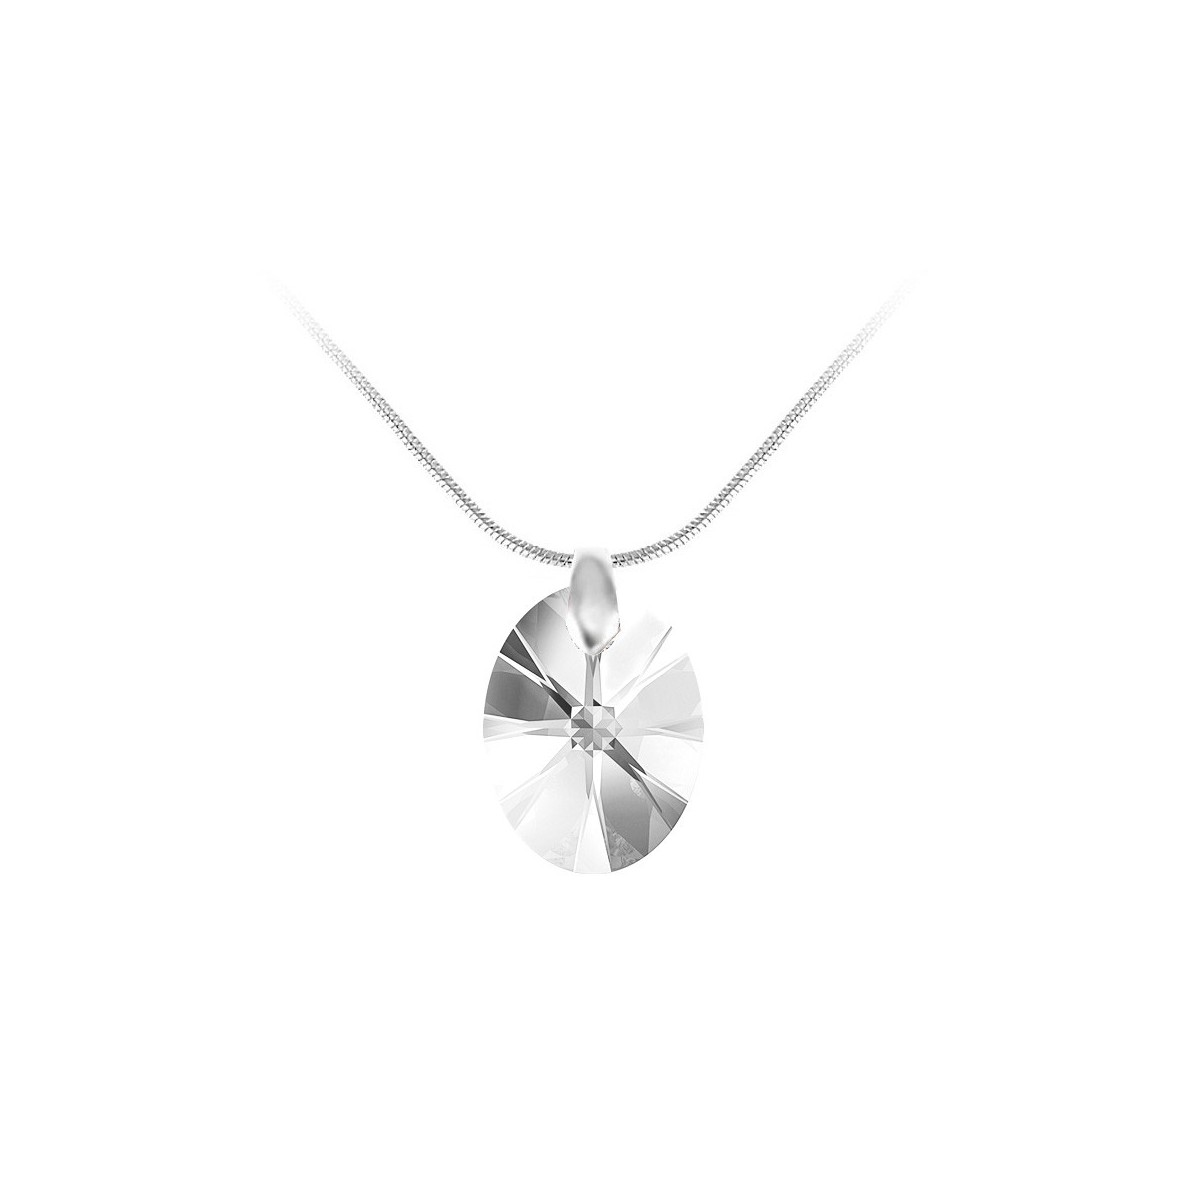 Collier argenté et goutte blanche So Charm made with Crystal from Swarovski